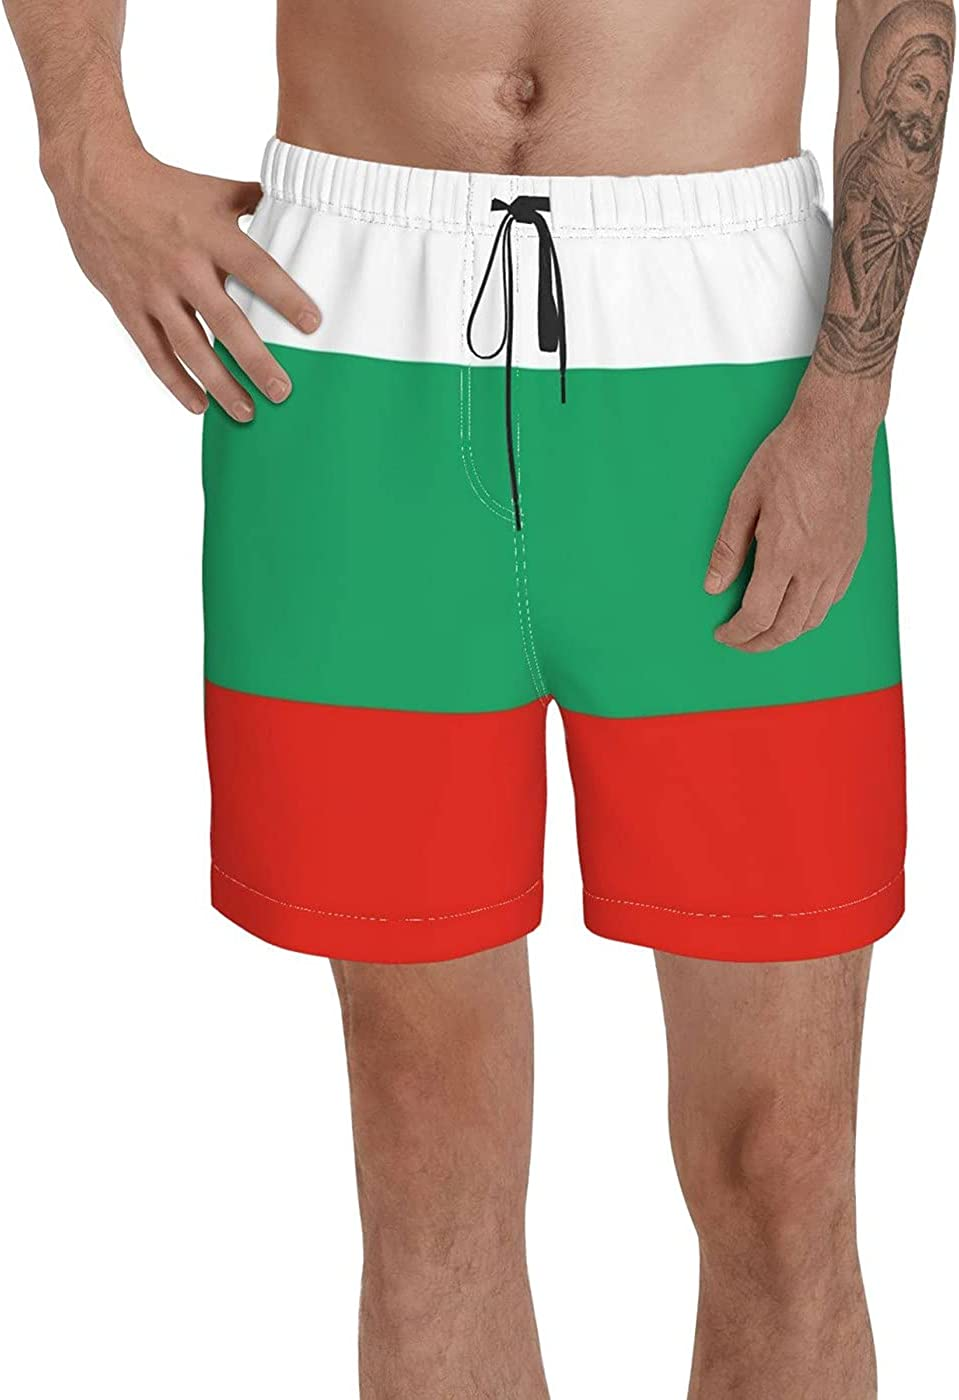 Count Bulgaria Flag Men's 3D Printed Funny Summer Quick Dry Swim Short Board Shorts with